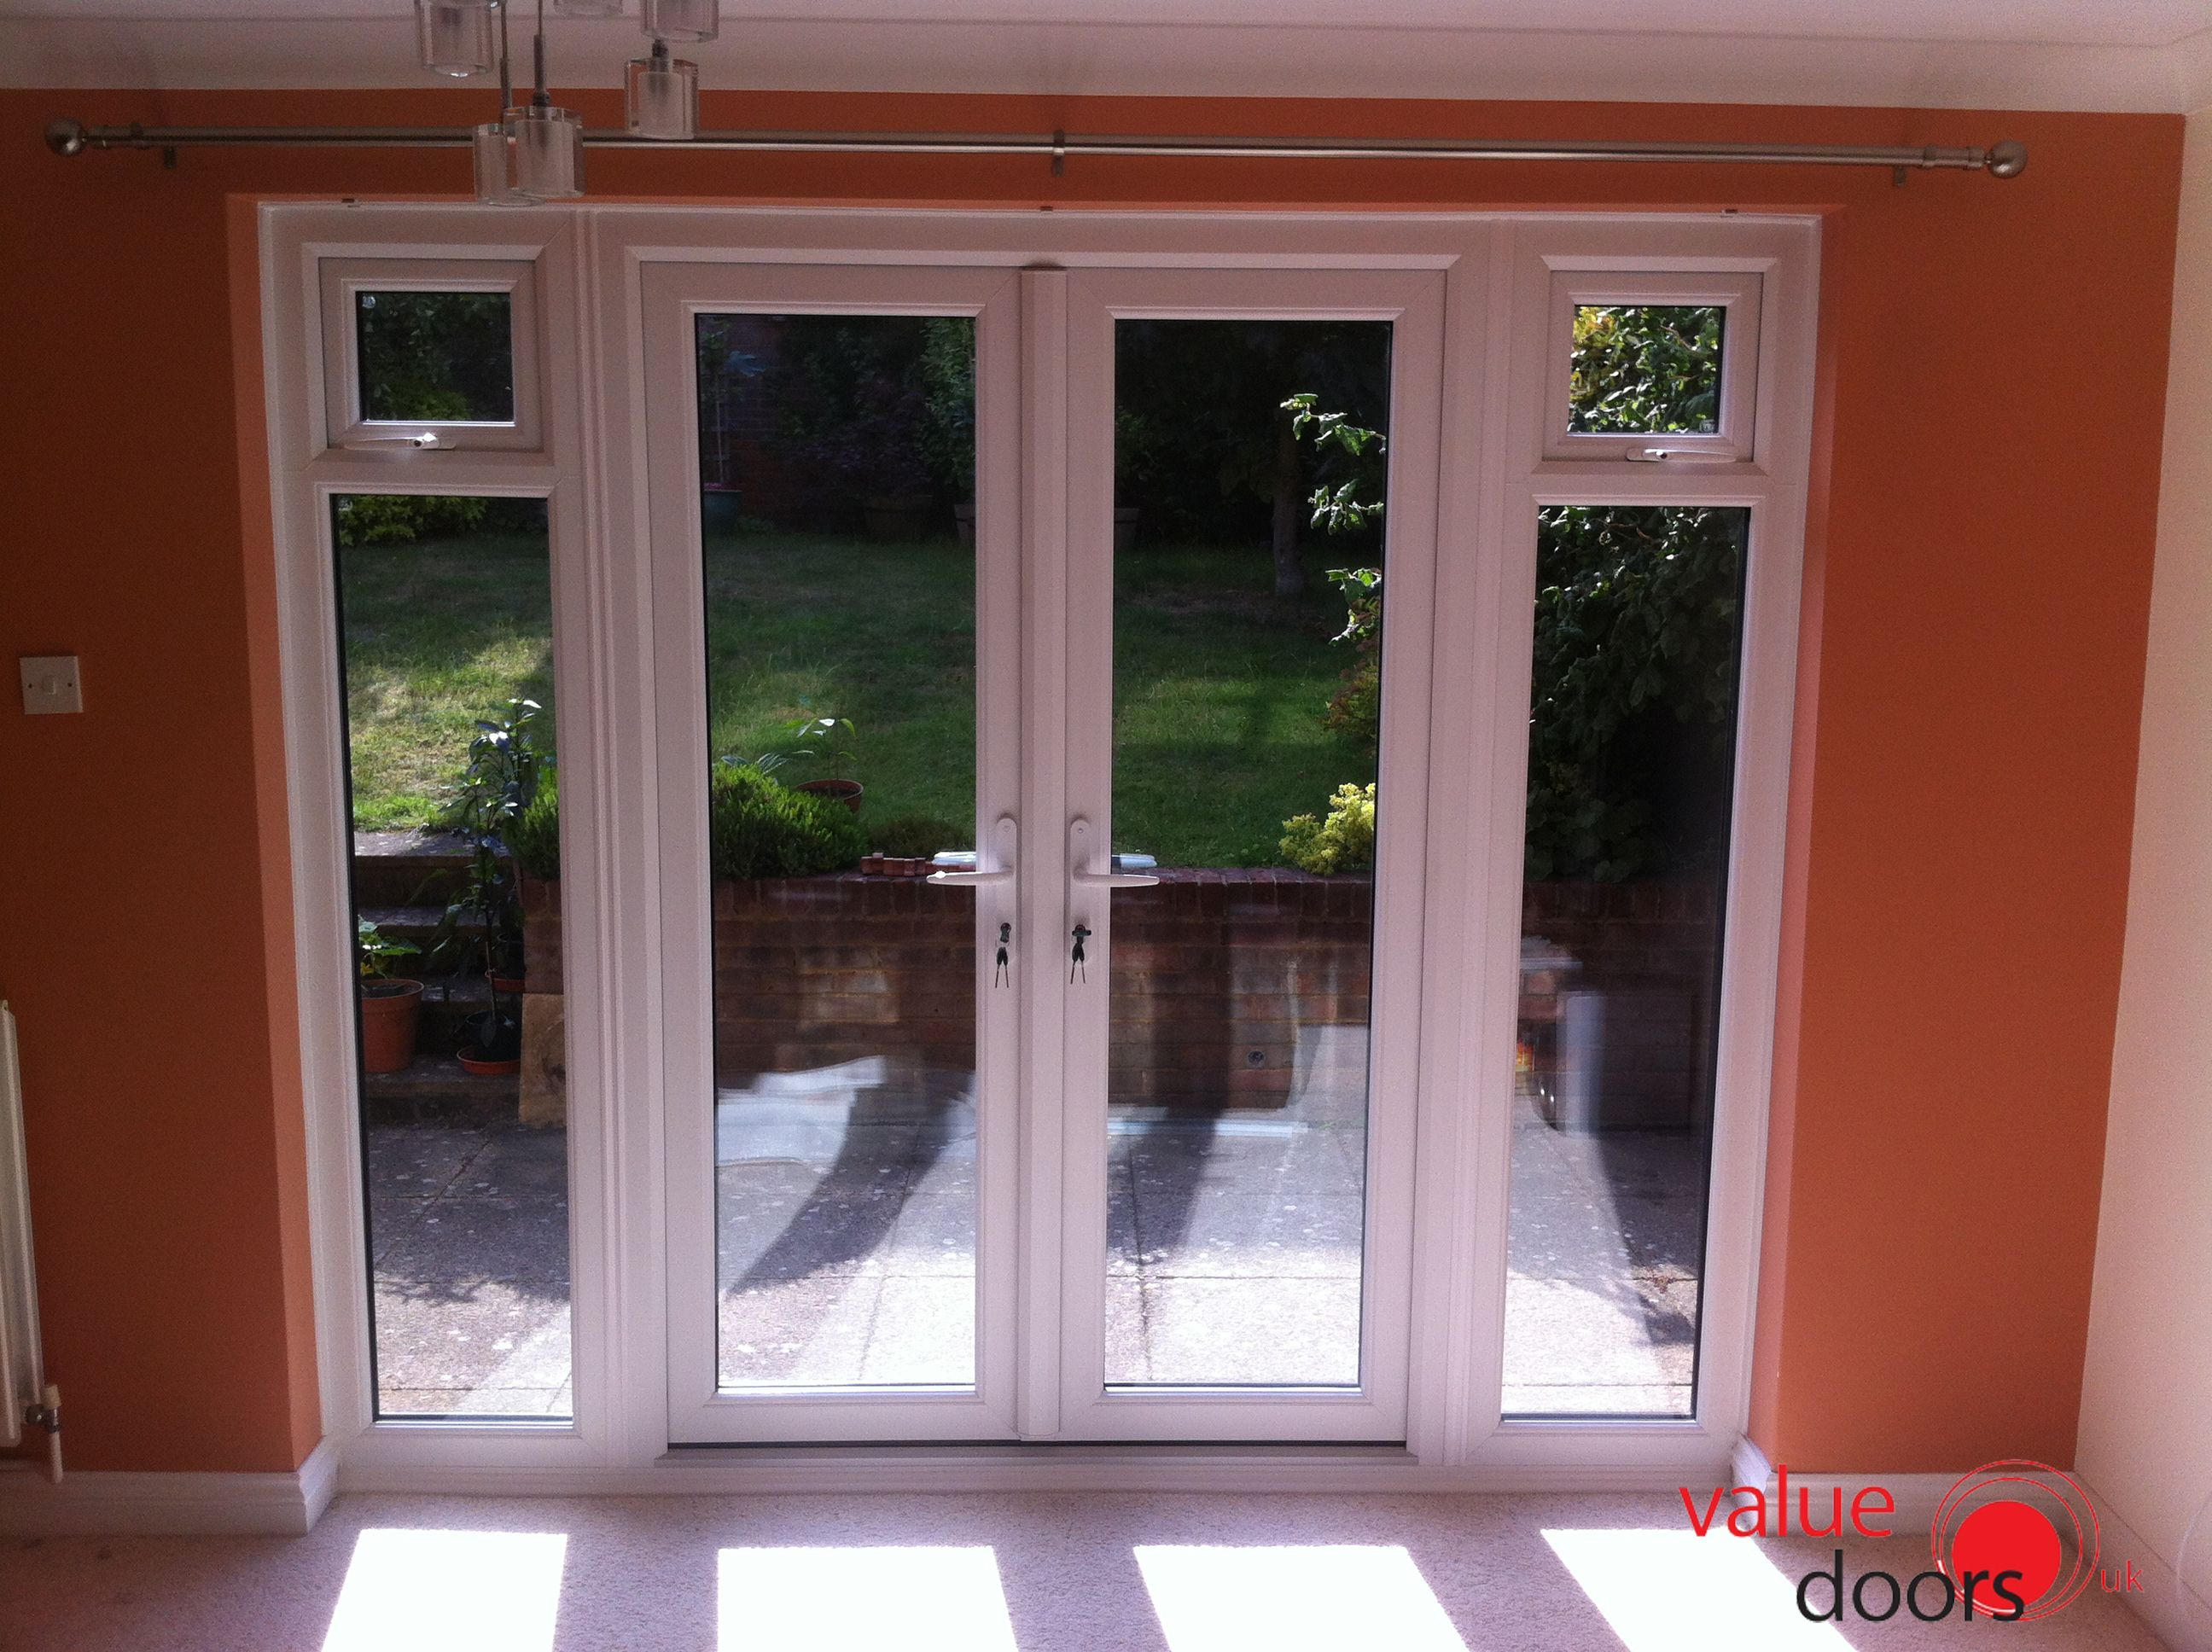 Wickes upvc french doors 8ft with 2 side panels 600mm upvc wickes upvc french doors 8ft with 2 side panels 600mm upvc french doors doors and extensions rubansaba